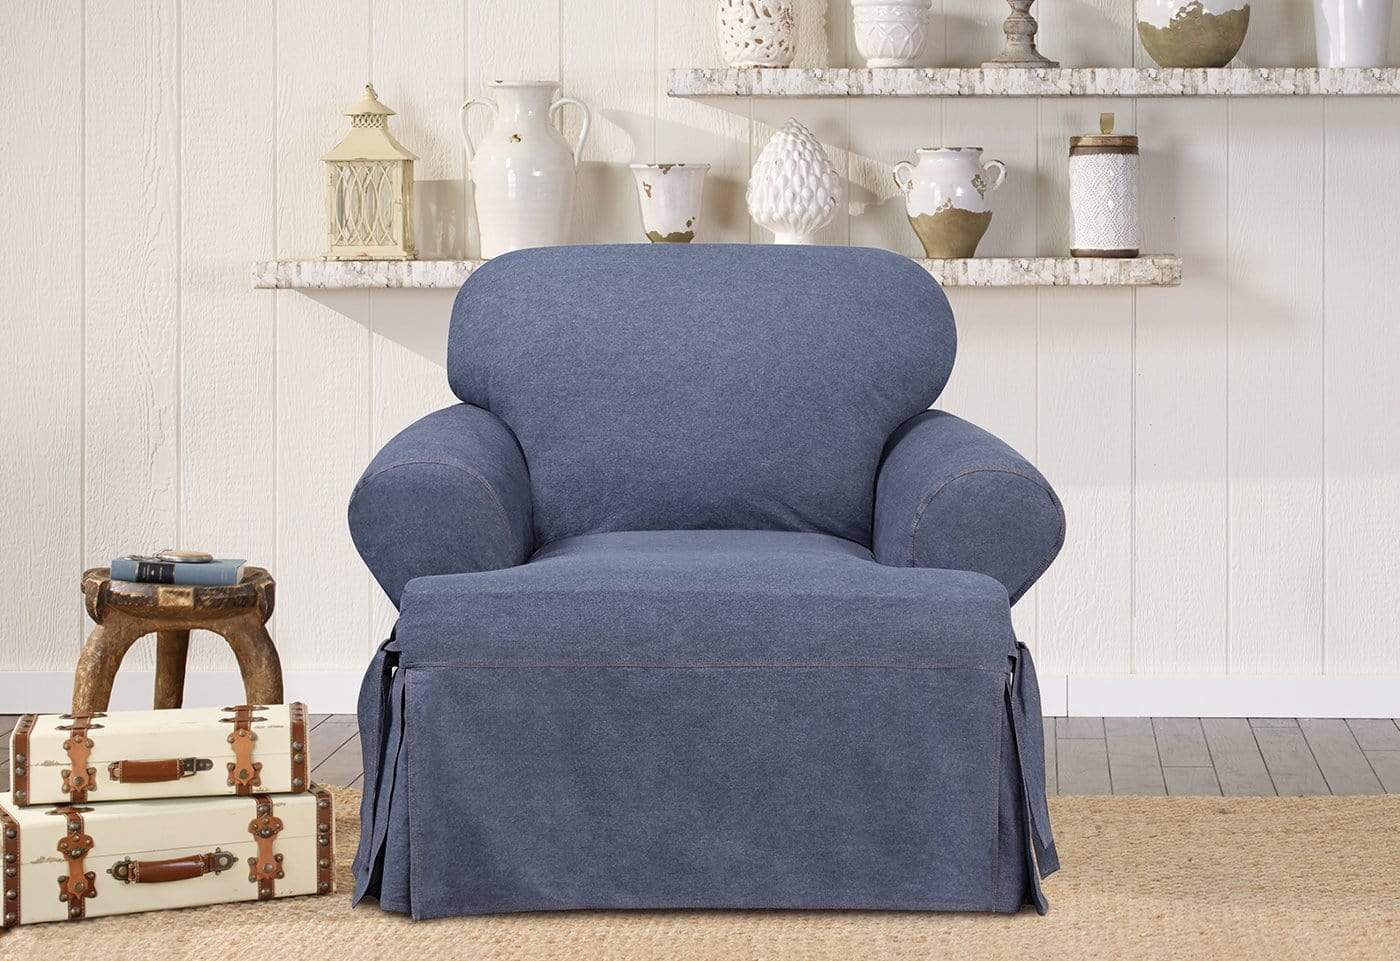 Authentic Denim One Piece Chair Slipcover 1/4 Inch Double Needle Stitching Machine Washable - Chair / T-Cushion / Indigo